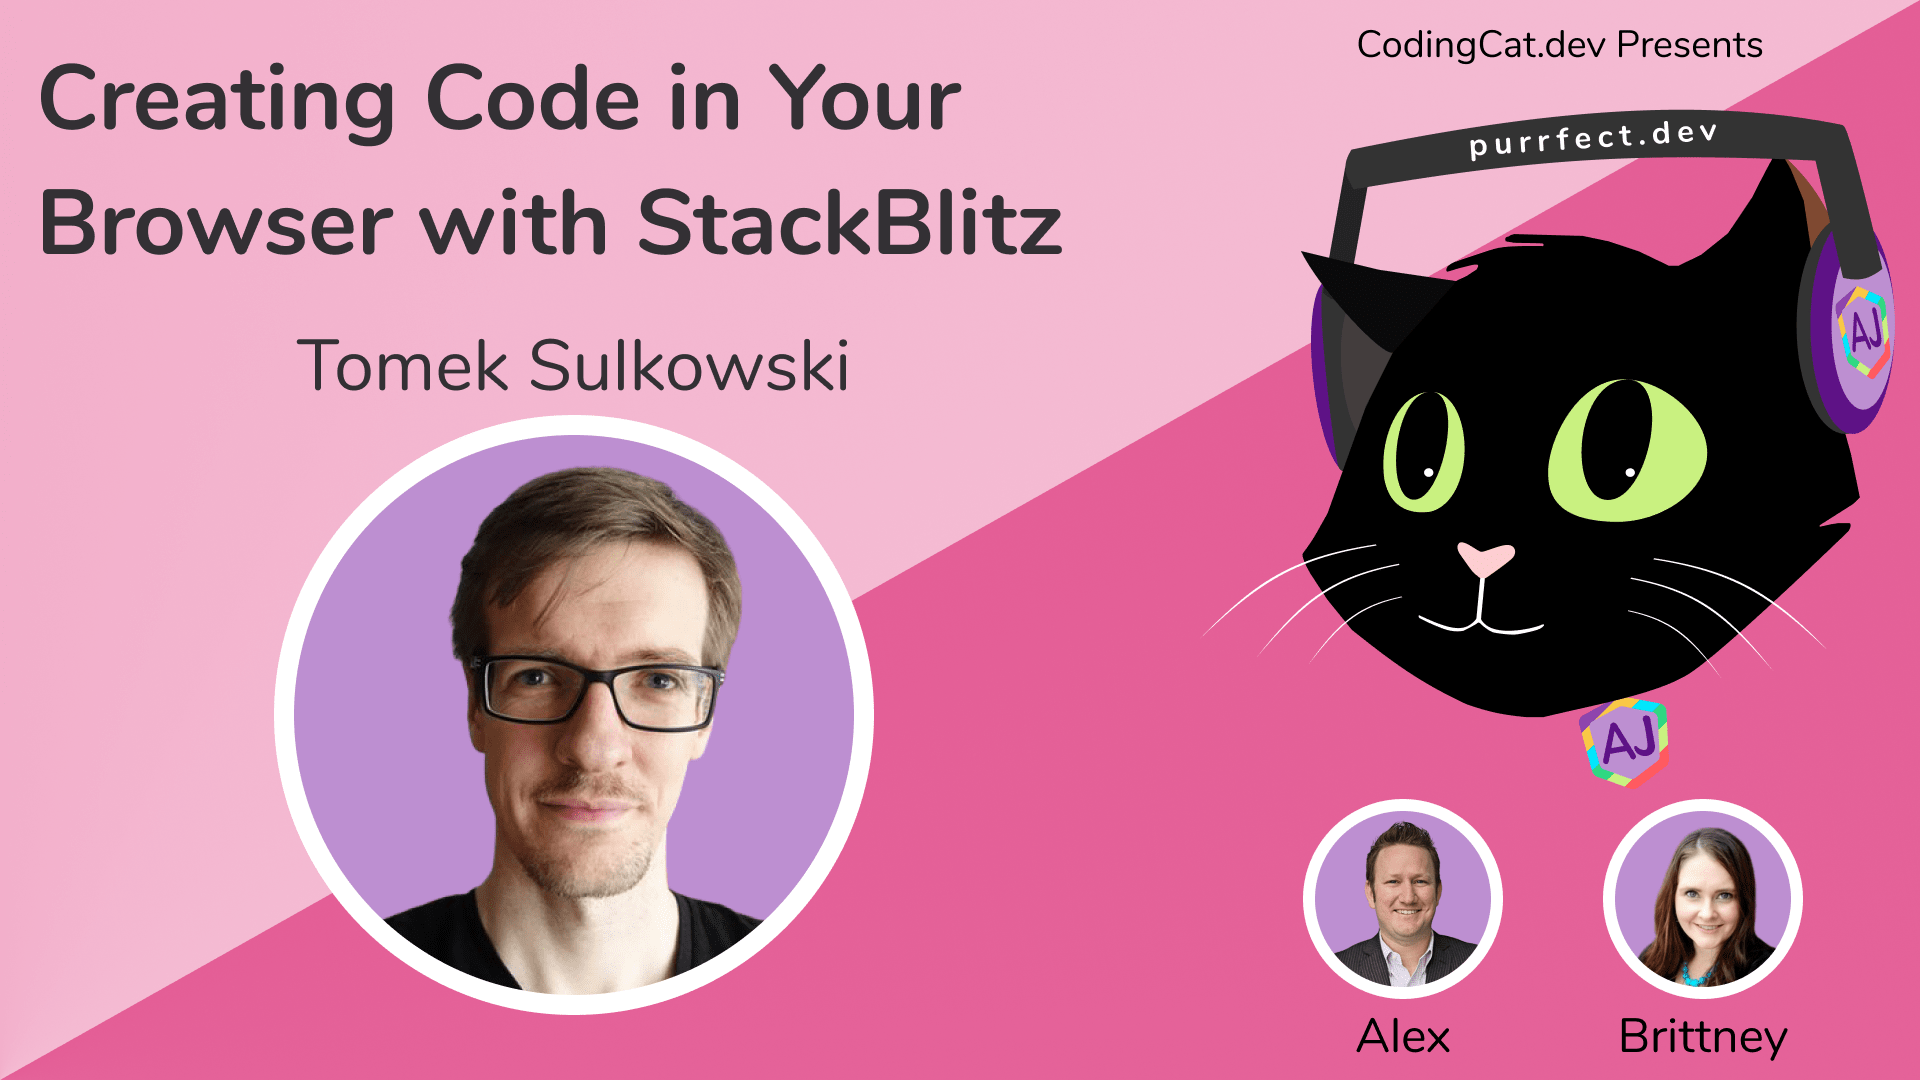 1.40 - Creating Code in Your Browser with StackBlitz